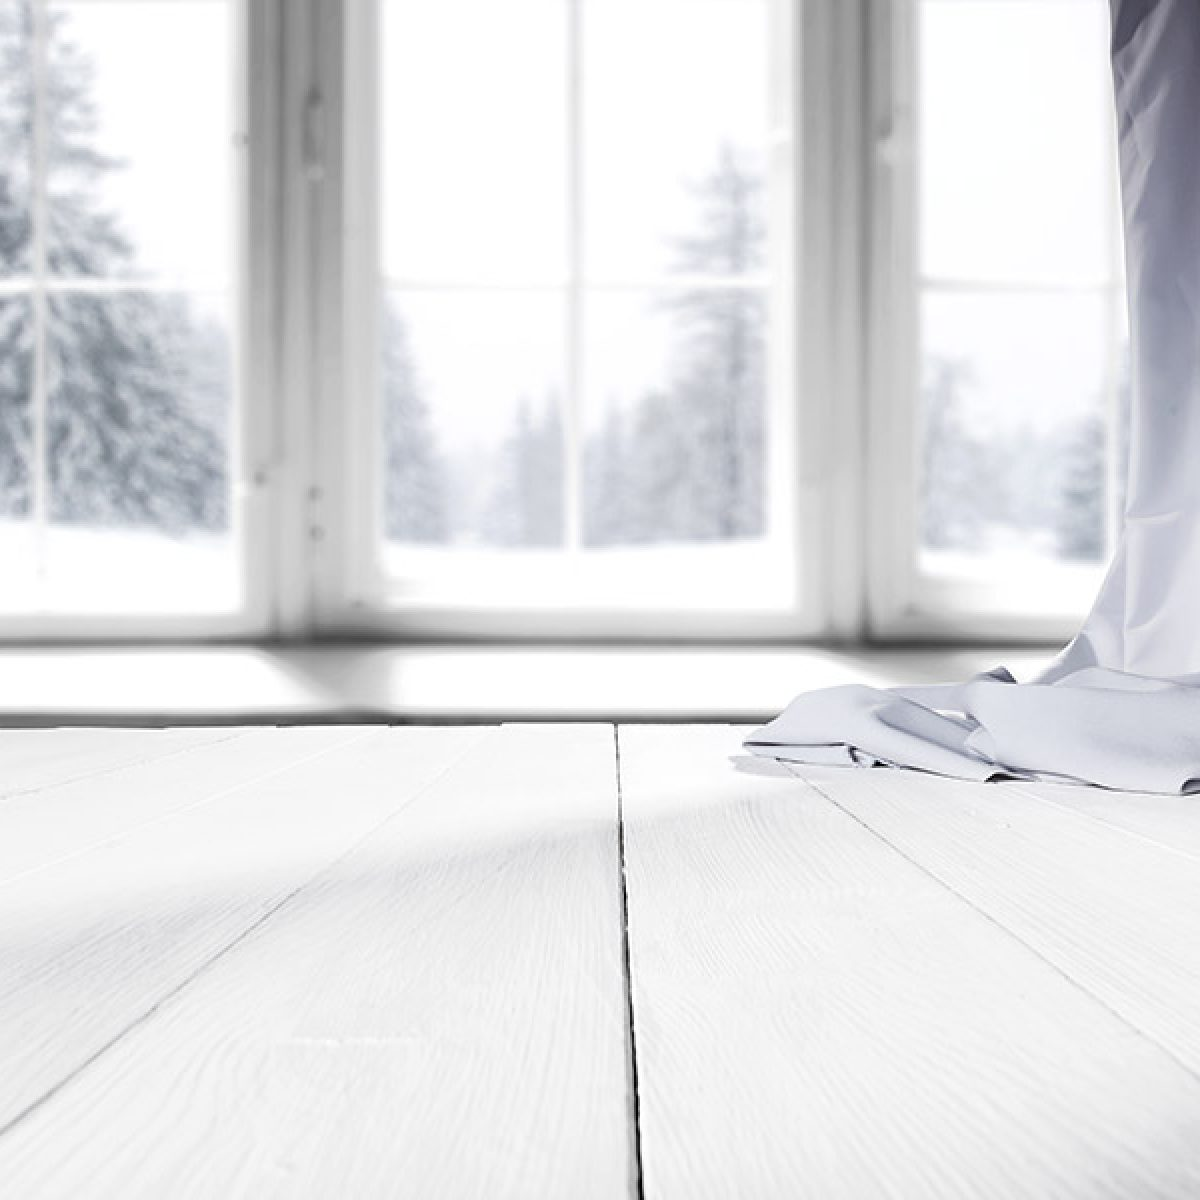 Gap in White Hardwood Flooring During Winter